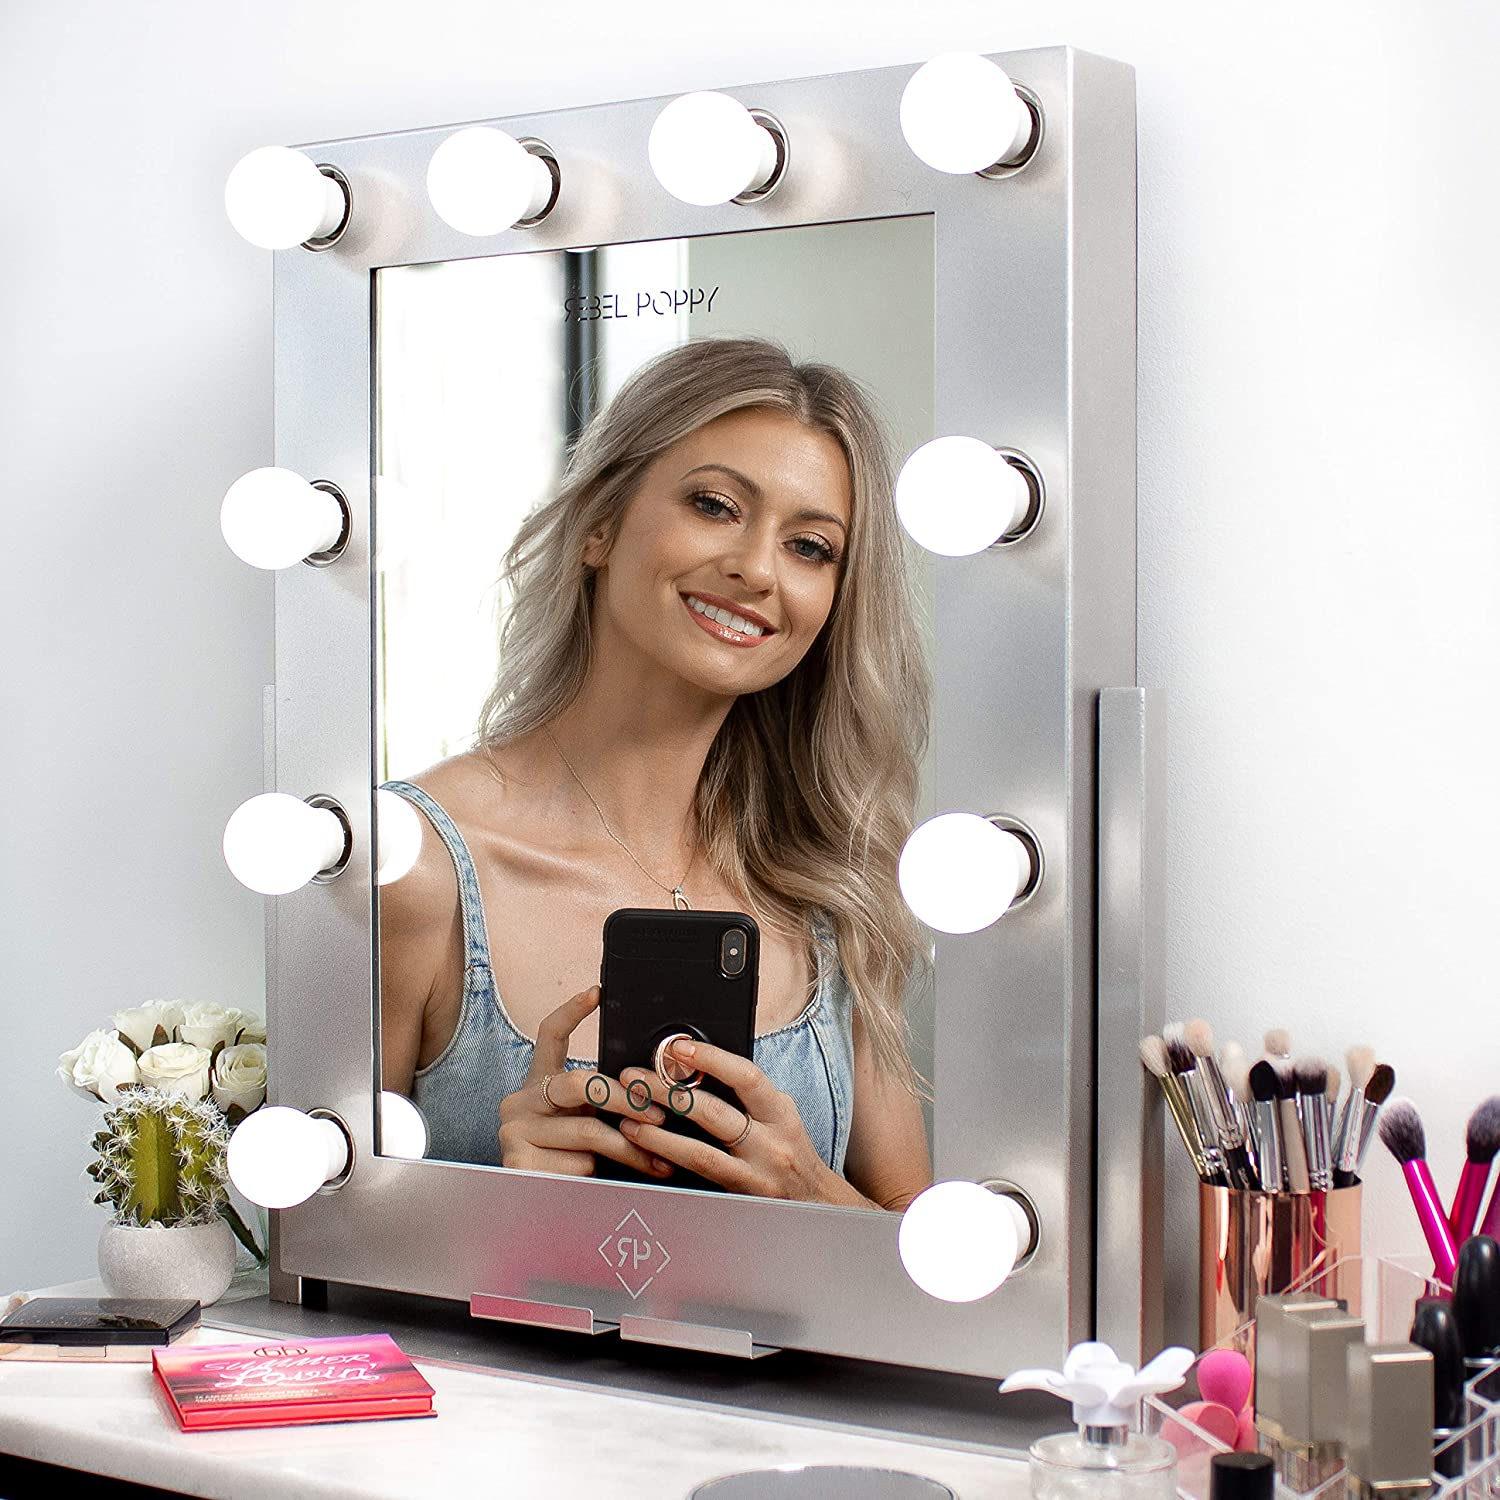 REBEL POPPY Vanity Mirrors with LED Lights, Phone Mount, Dim Lighting Touch Control, 21.5 x 19 , Fogless – Hollywood Mirror and Magnifying Set – GLAM Silver